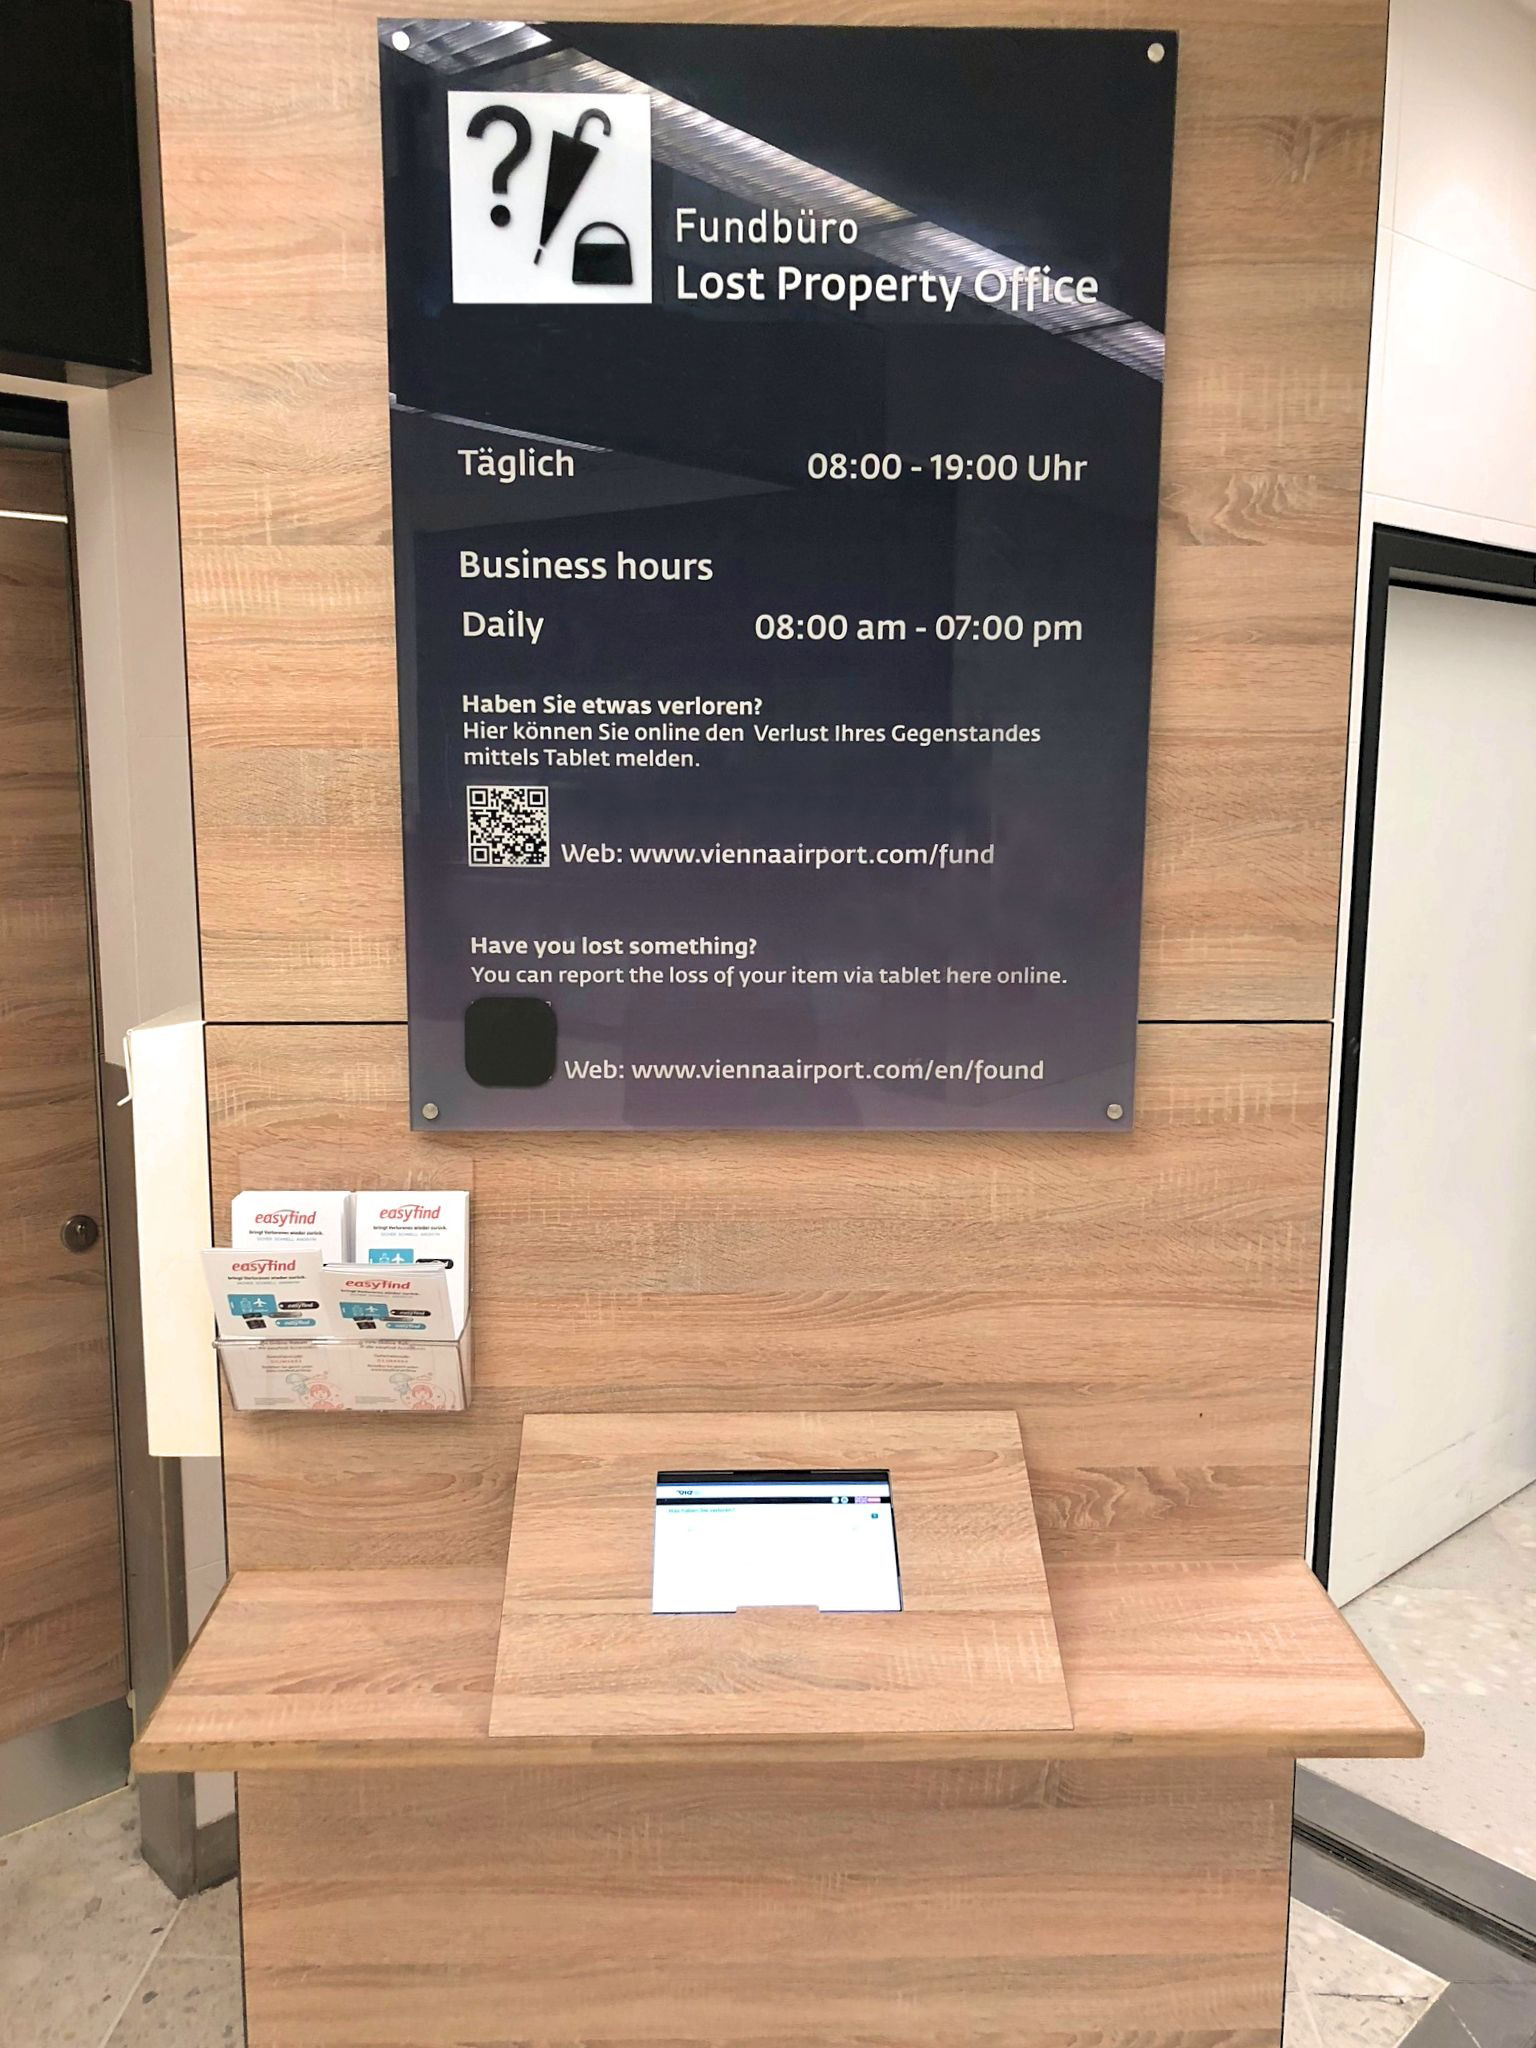 Self service desk at vienna airport